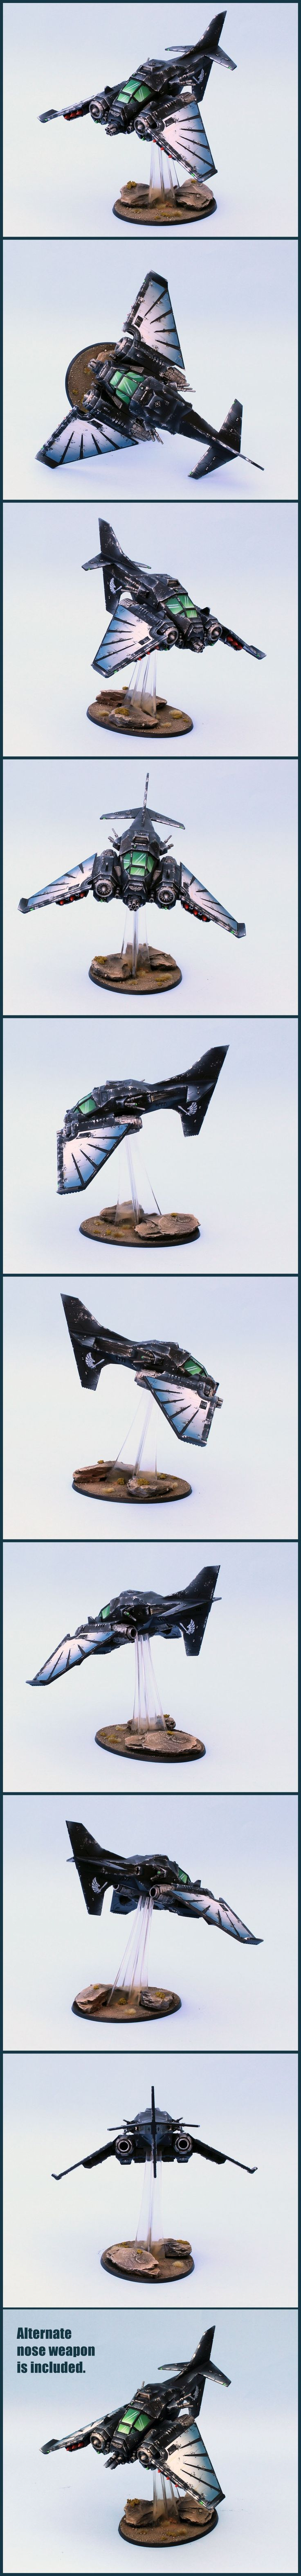 40k - Dark Angels Ravenwing Nephilim Jetfighter